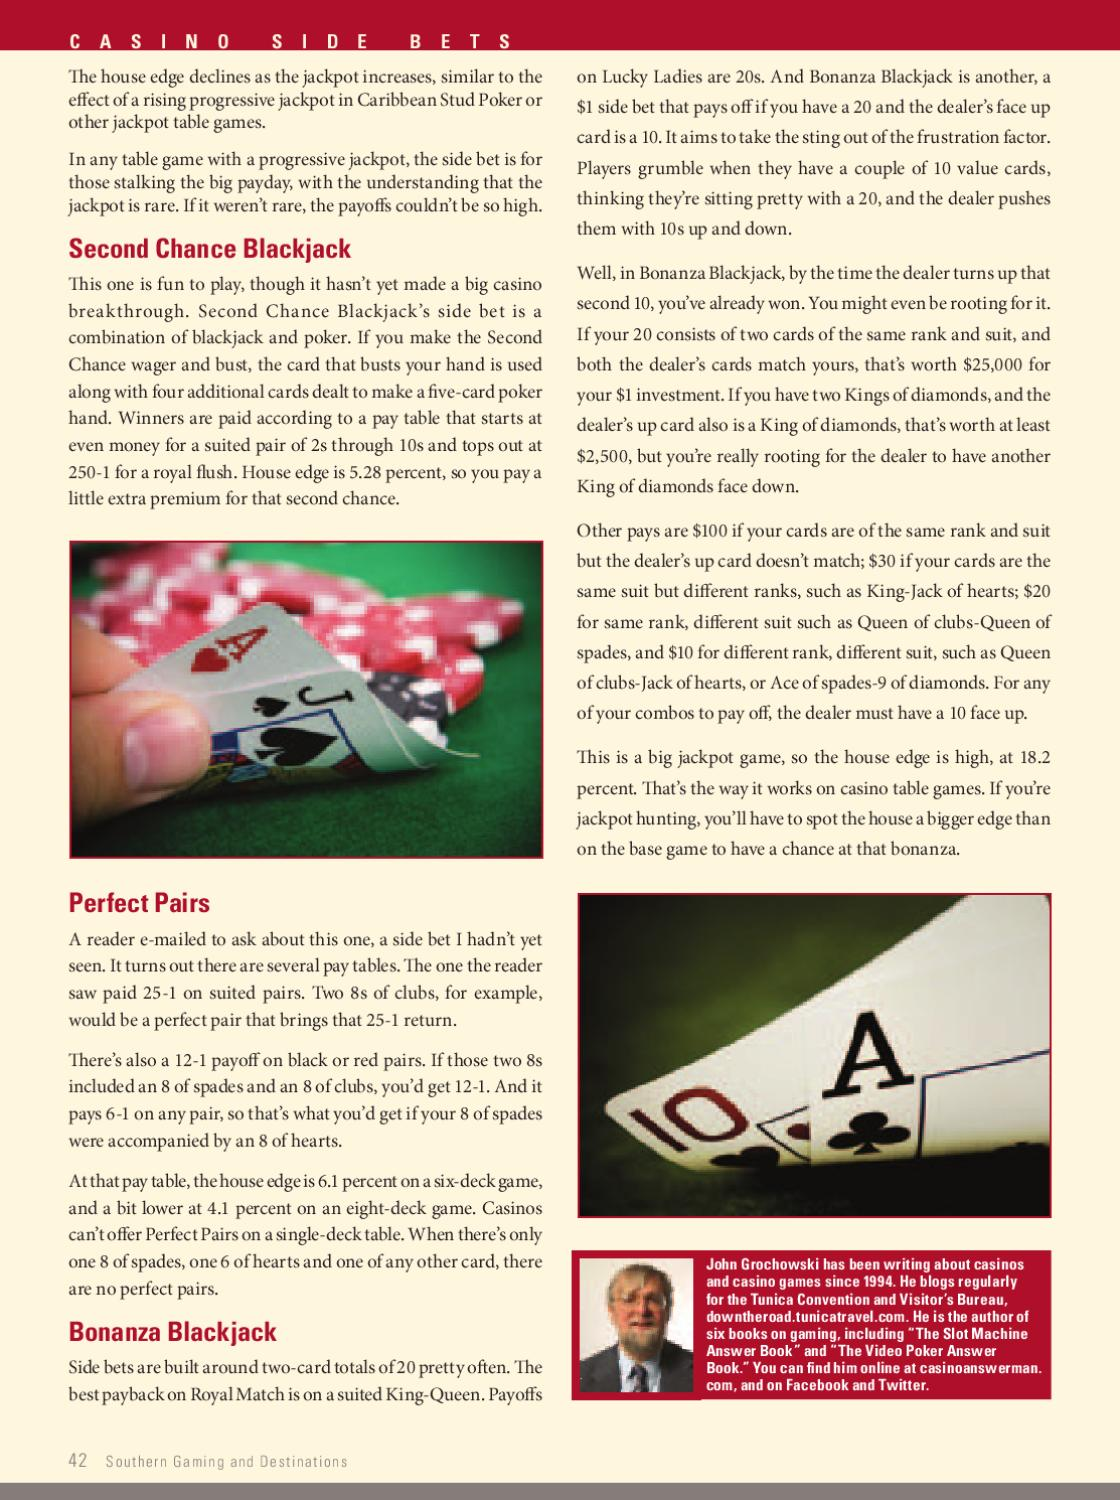 Southern Gaming and Destinations Magazine by Gaming and Destinations